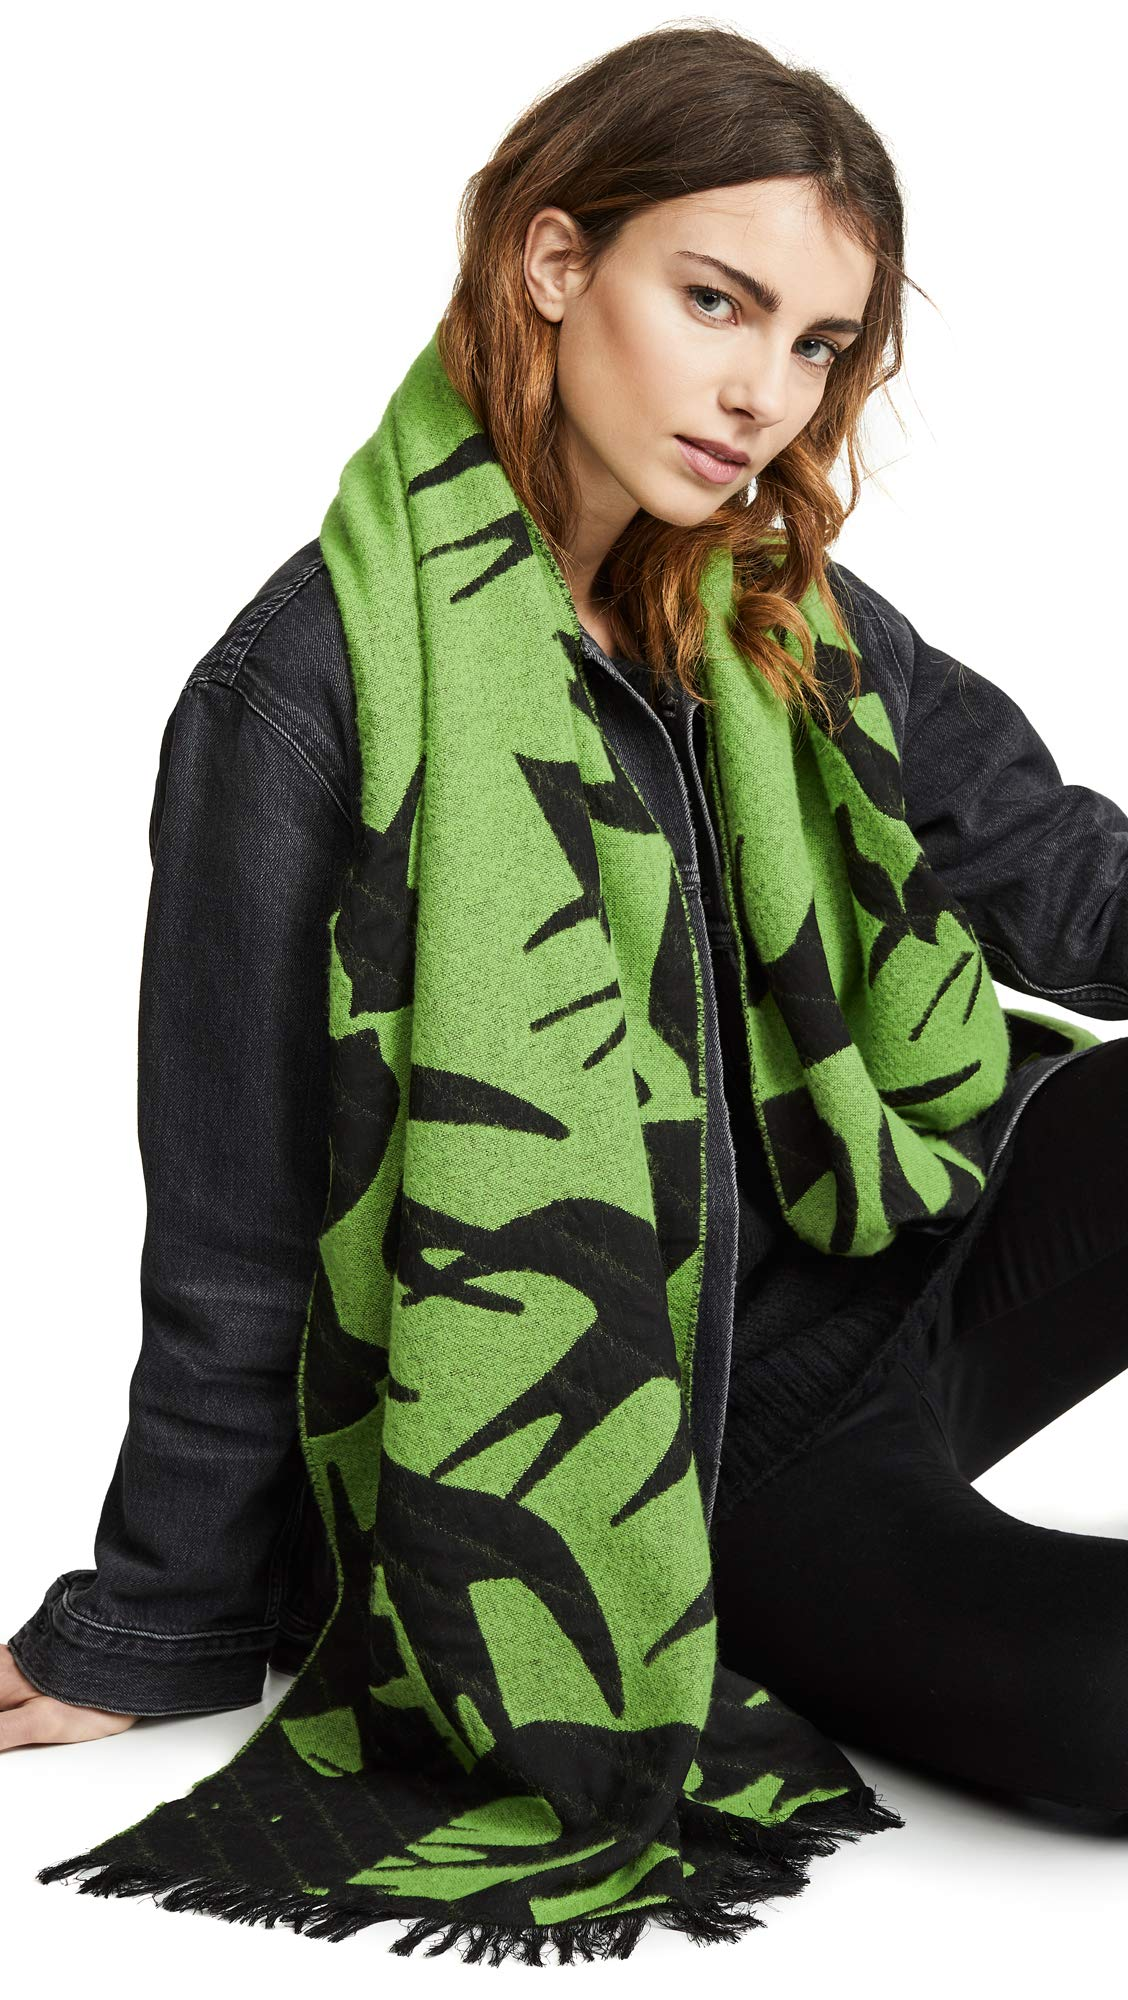 McQ - Alexander McQueen Women's Swallow Cut Up Scarf, Slime Green, One Size